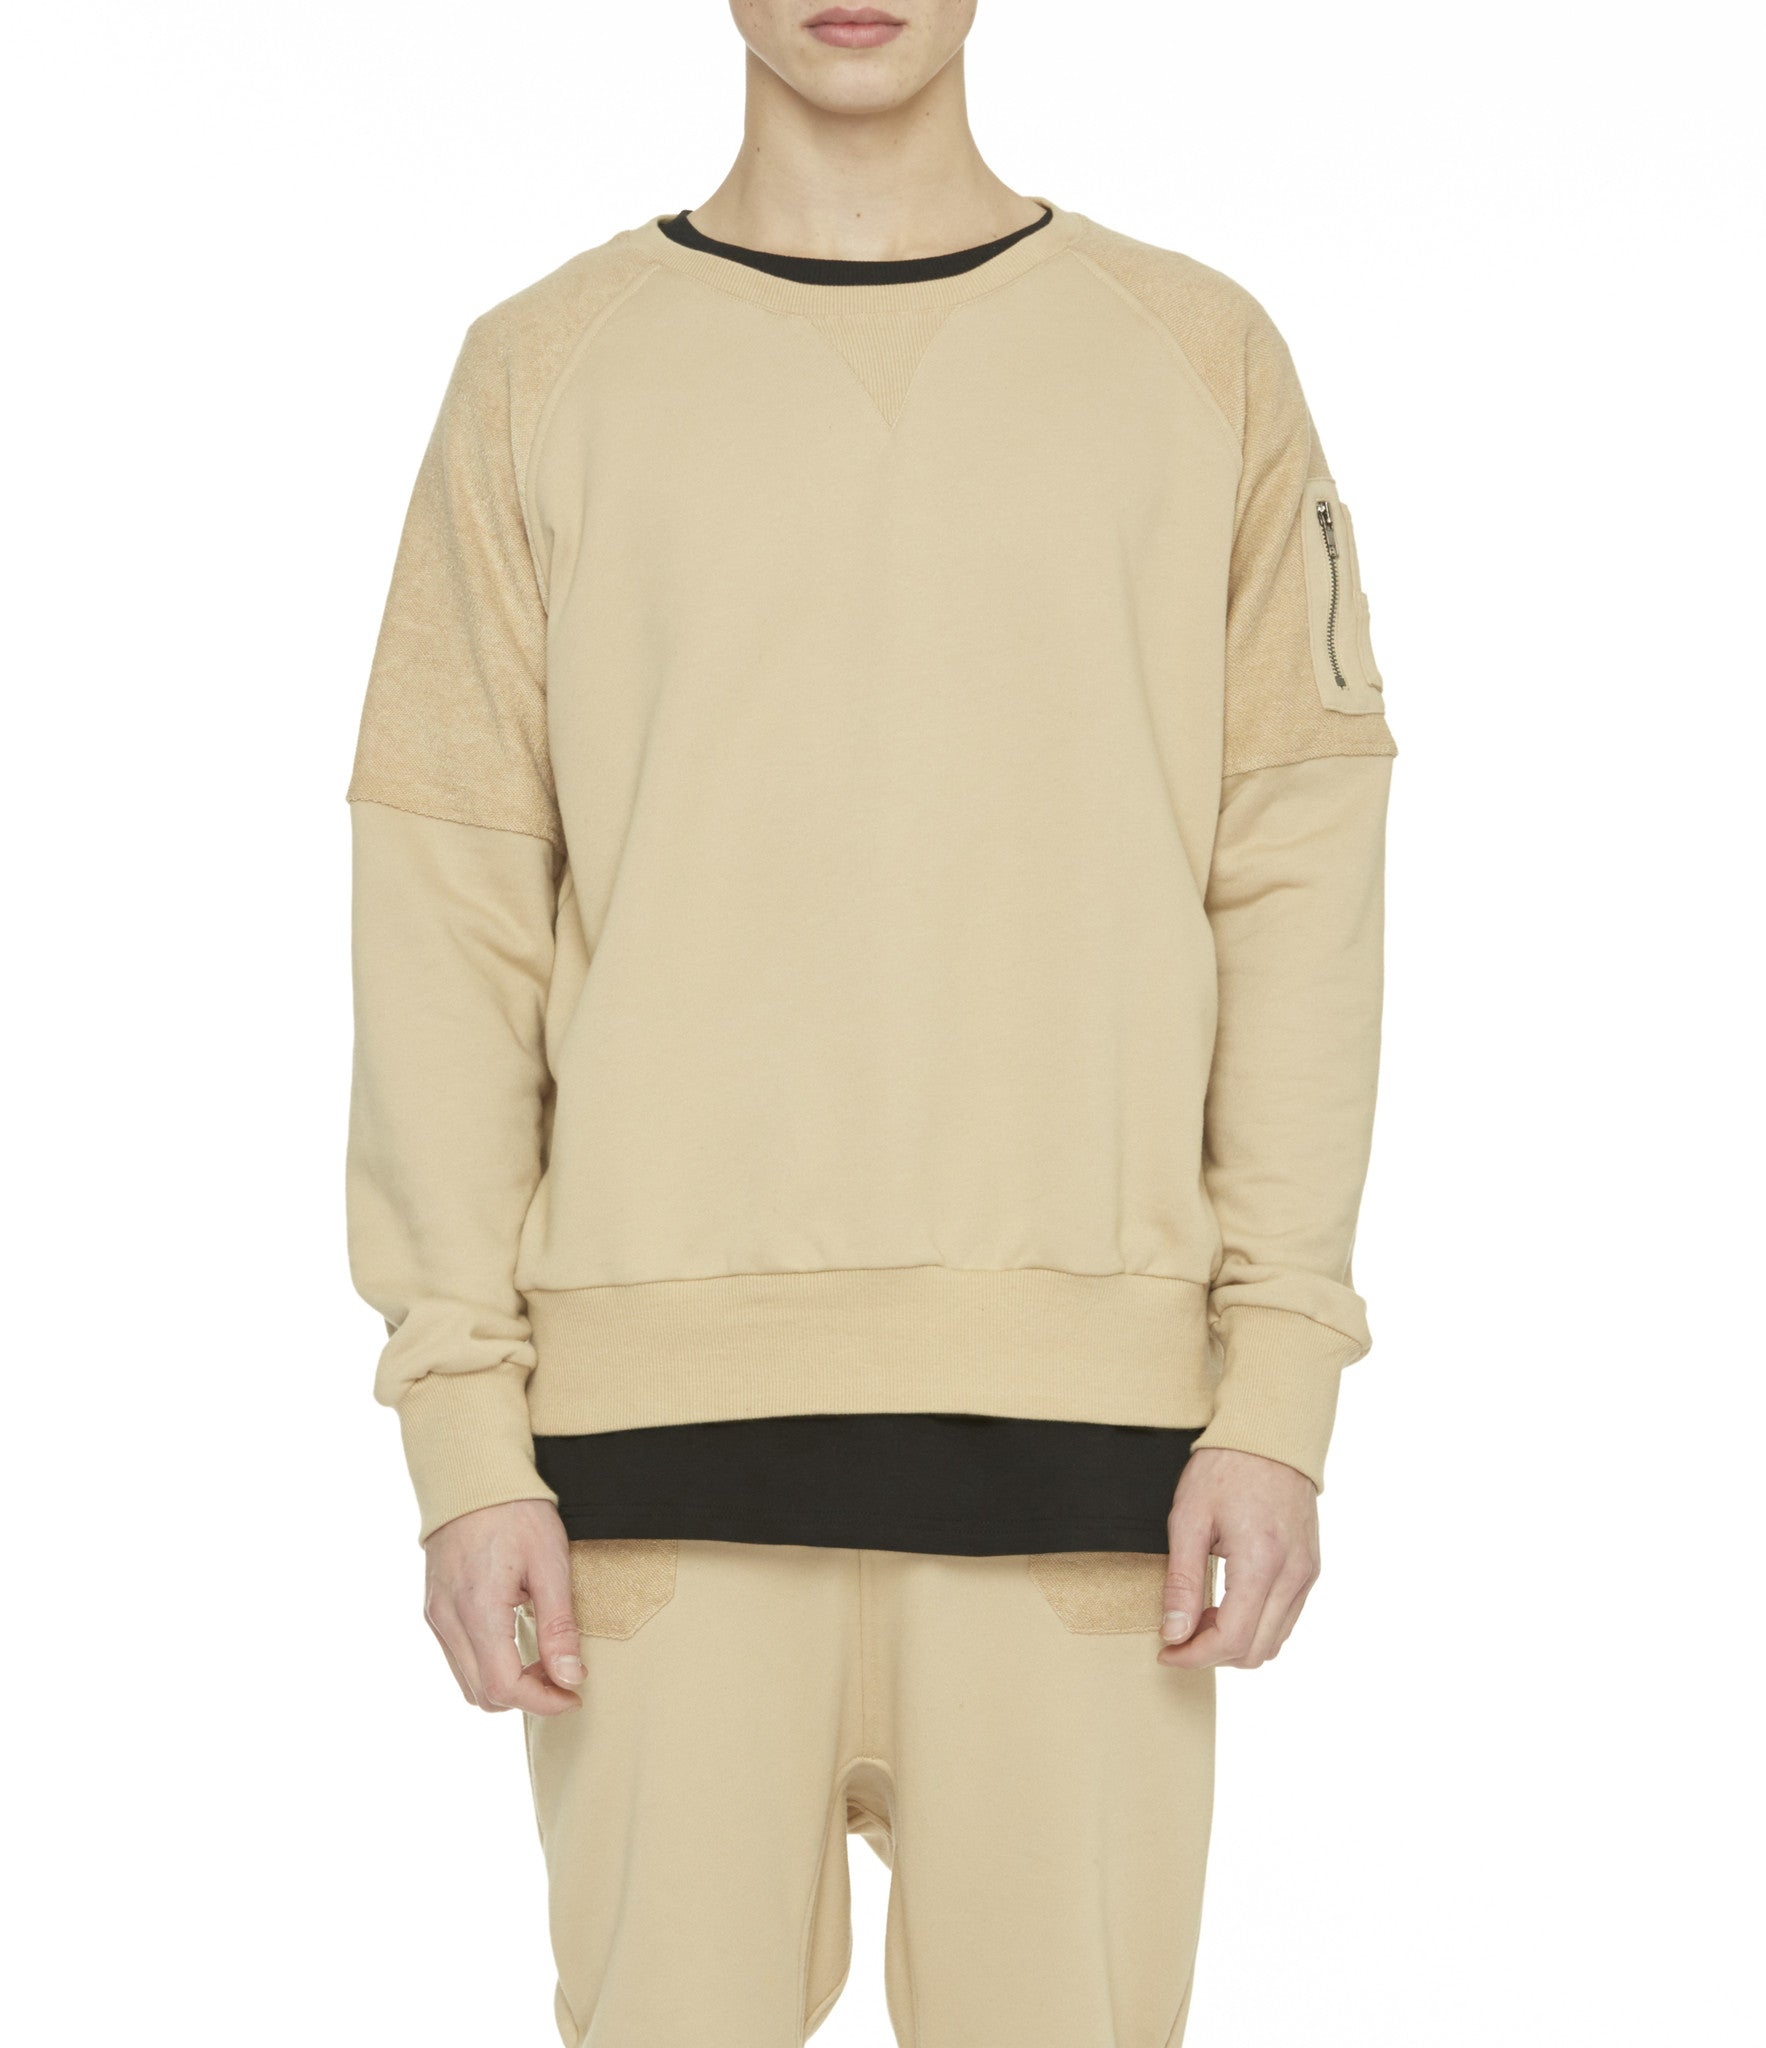 SW229 Oversized Utility Sweatshirt - Beige - underated london - underatedco - 4